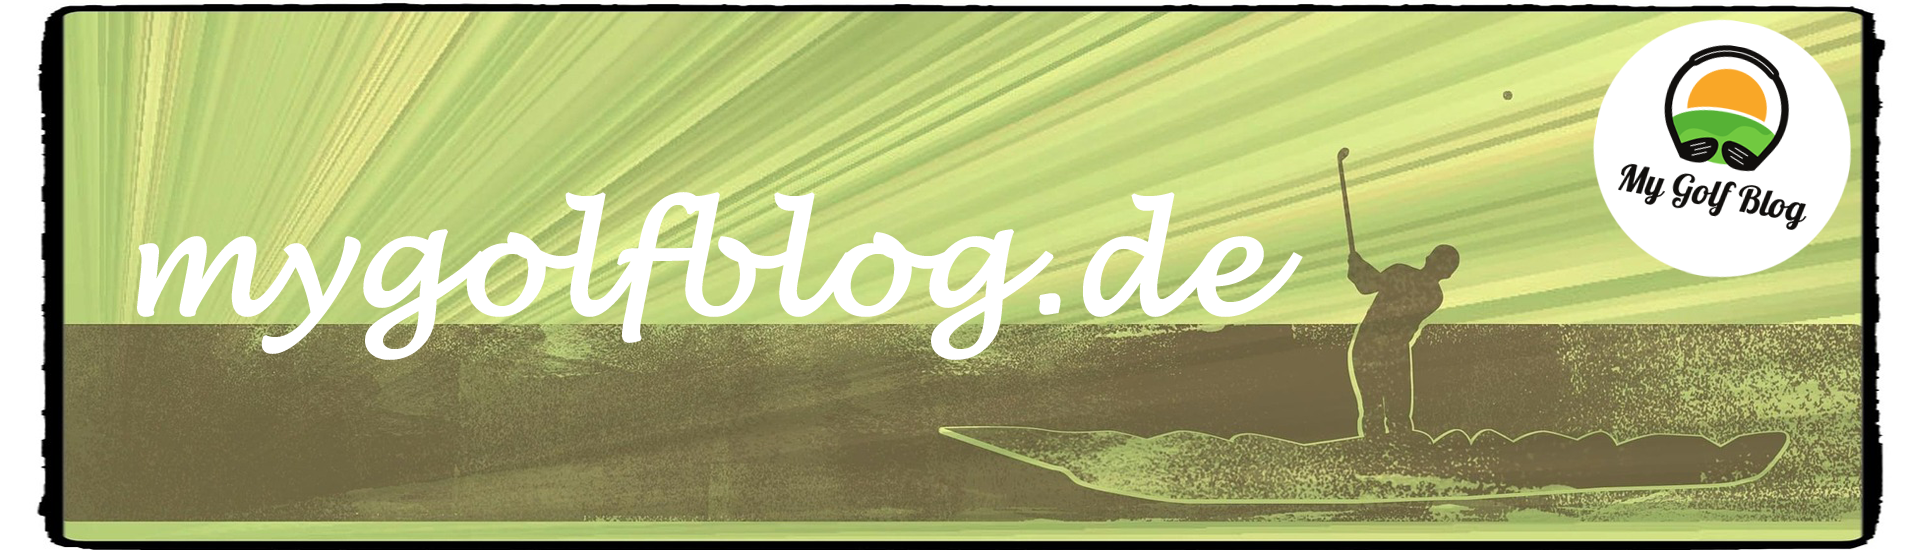 my gollf blog header